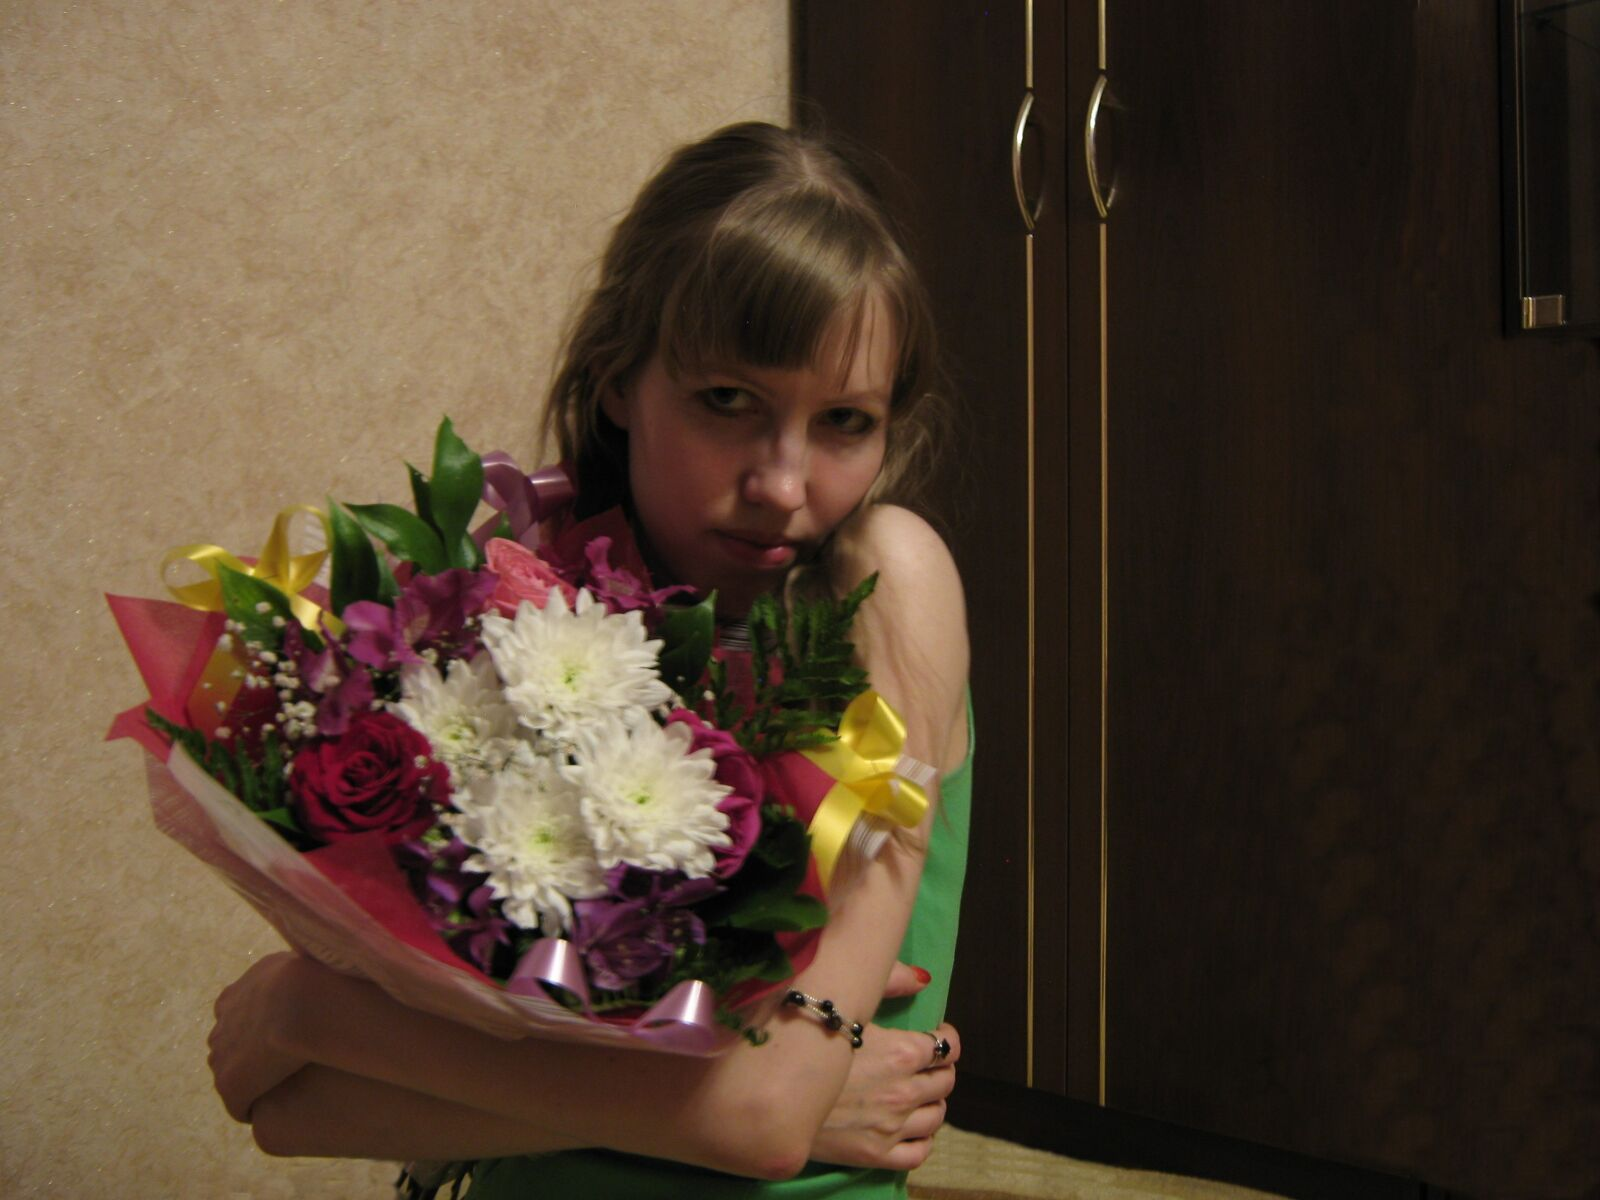 """Canon PowerShot A470 sample photo. """"Girl, bouquet, flowers"""" photography"""